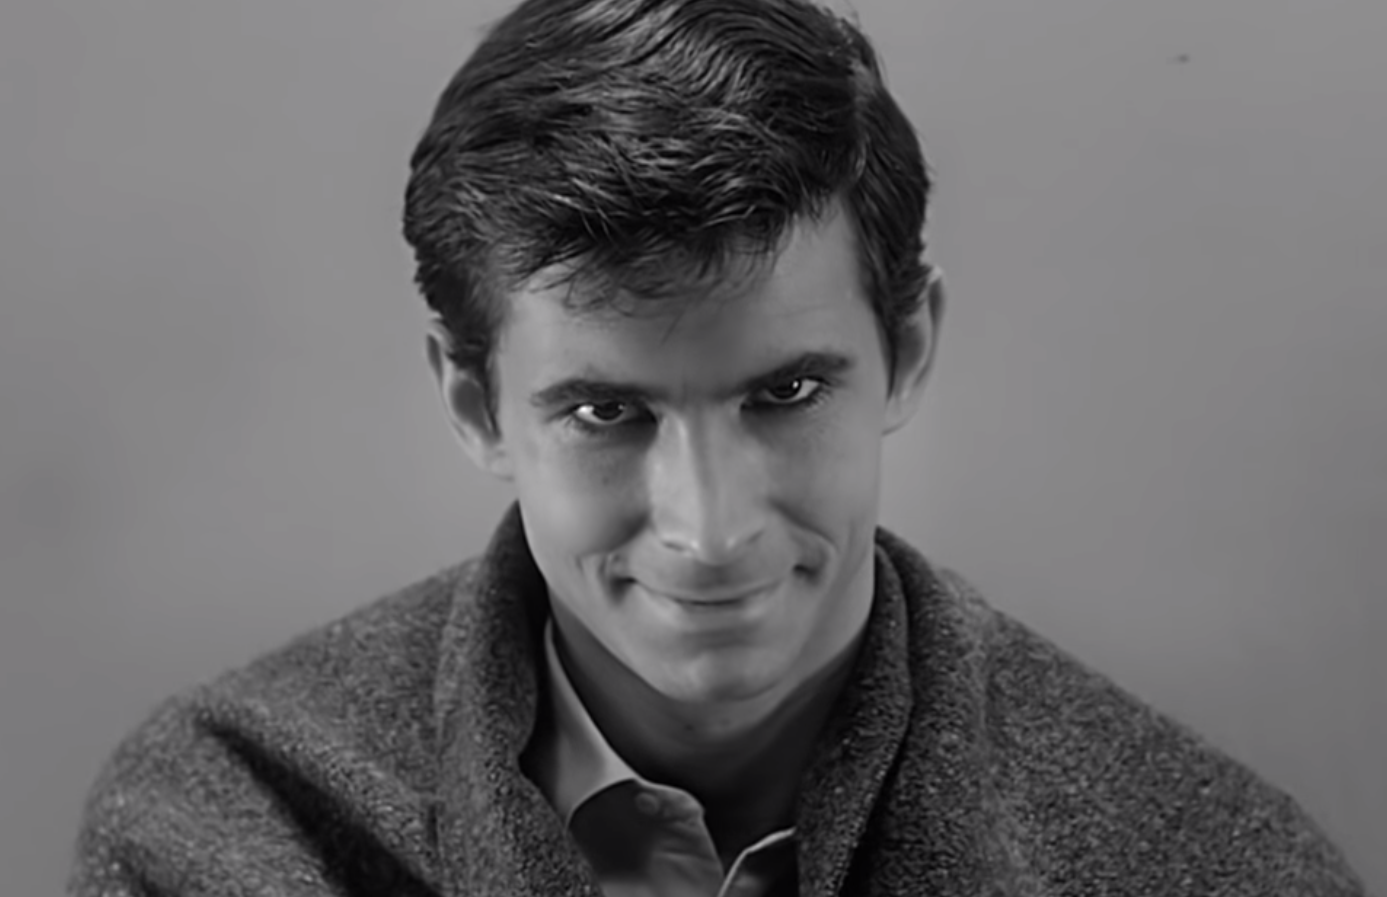 Norman Bates staring creepily into the camera in his prison cell